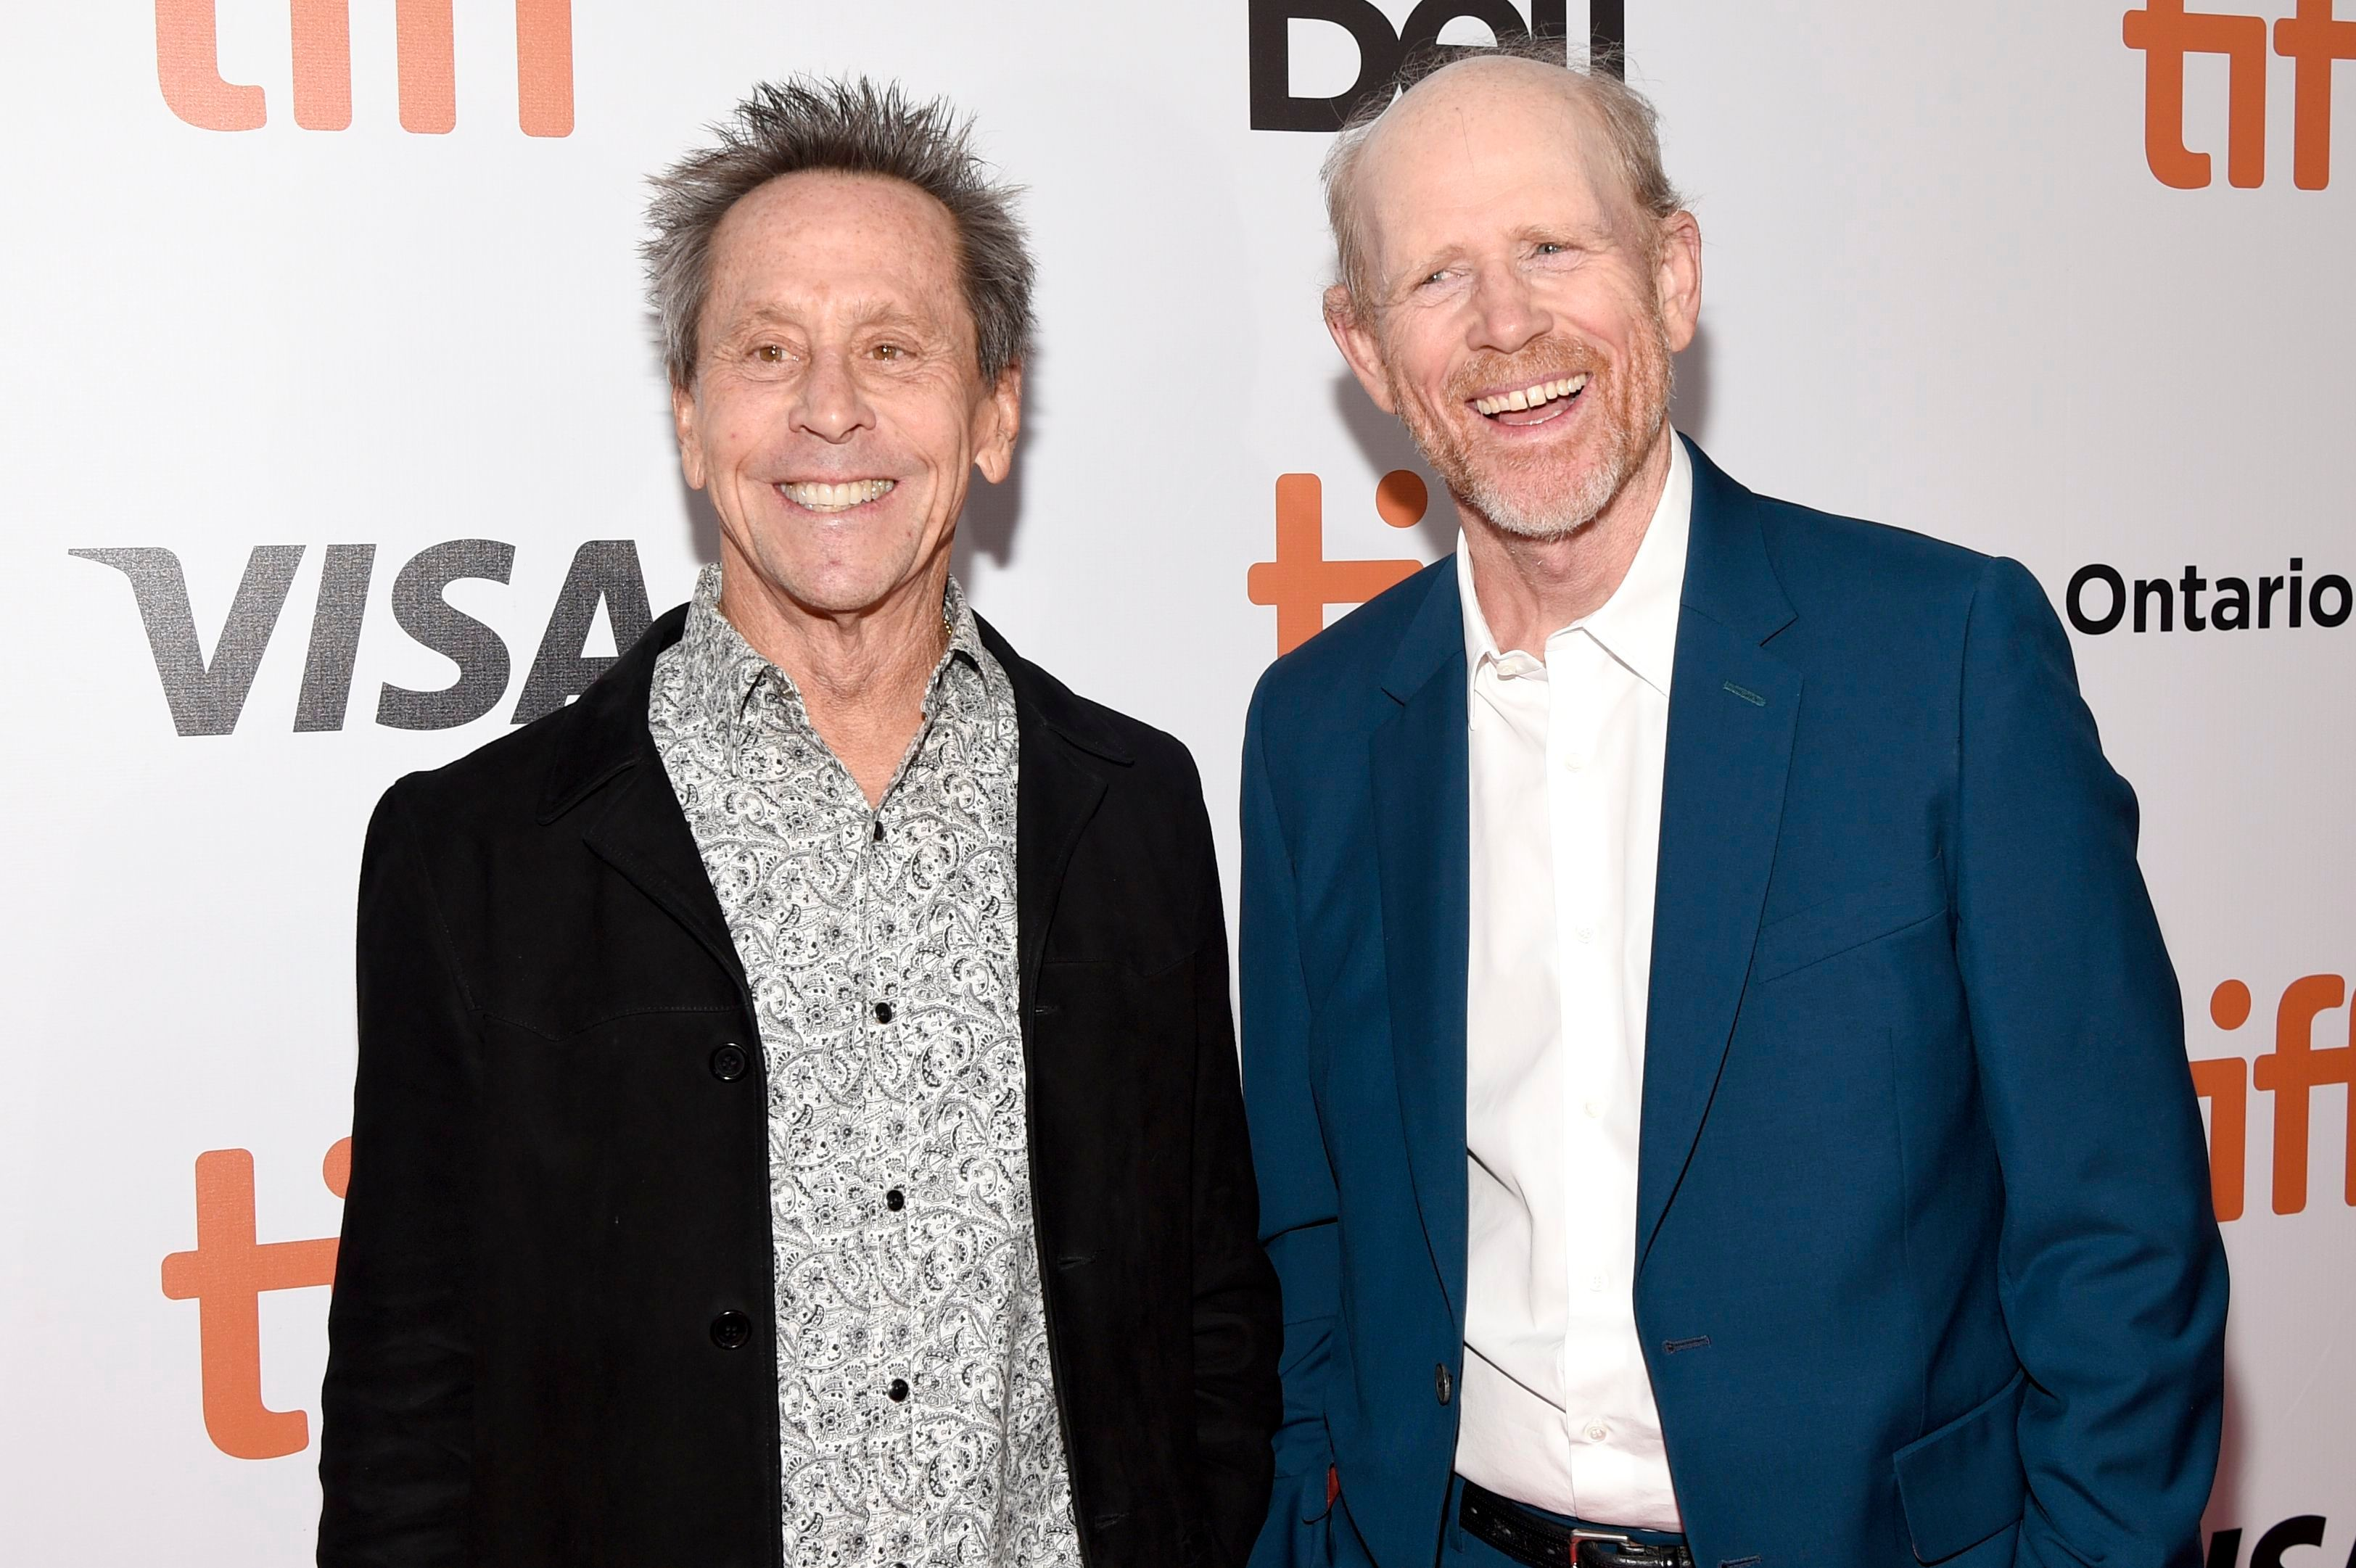 At TIFF, Ron Howard and Brian Grazer Say Some Movies Don't Need Wide Release and That's OK